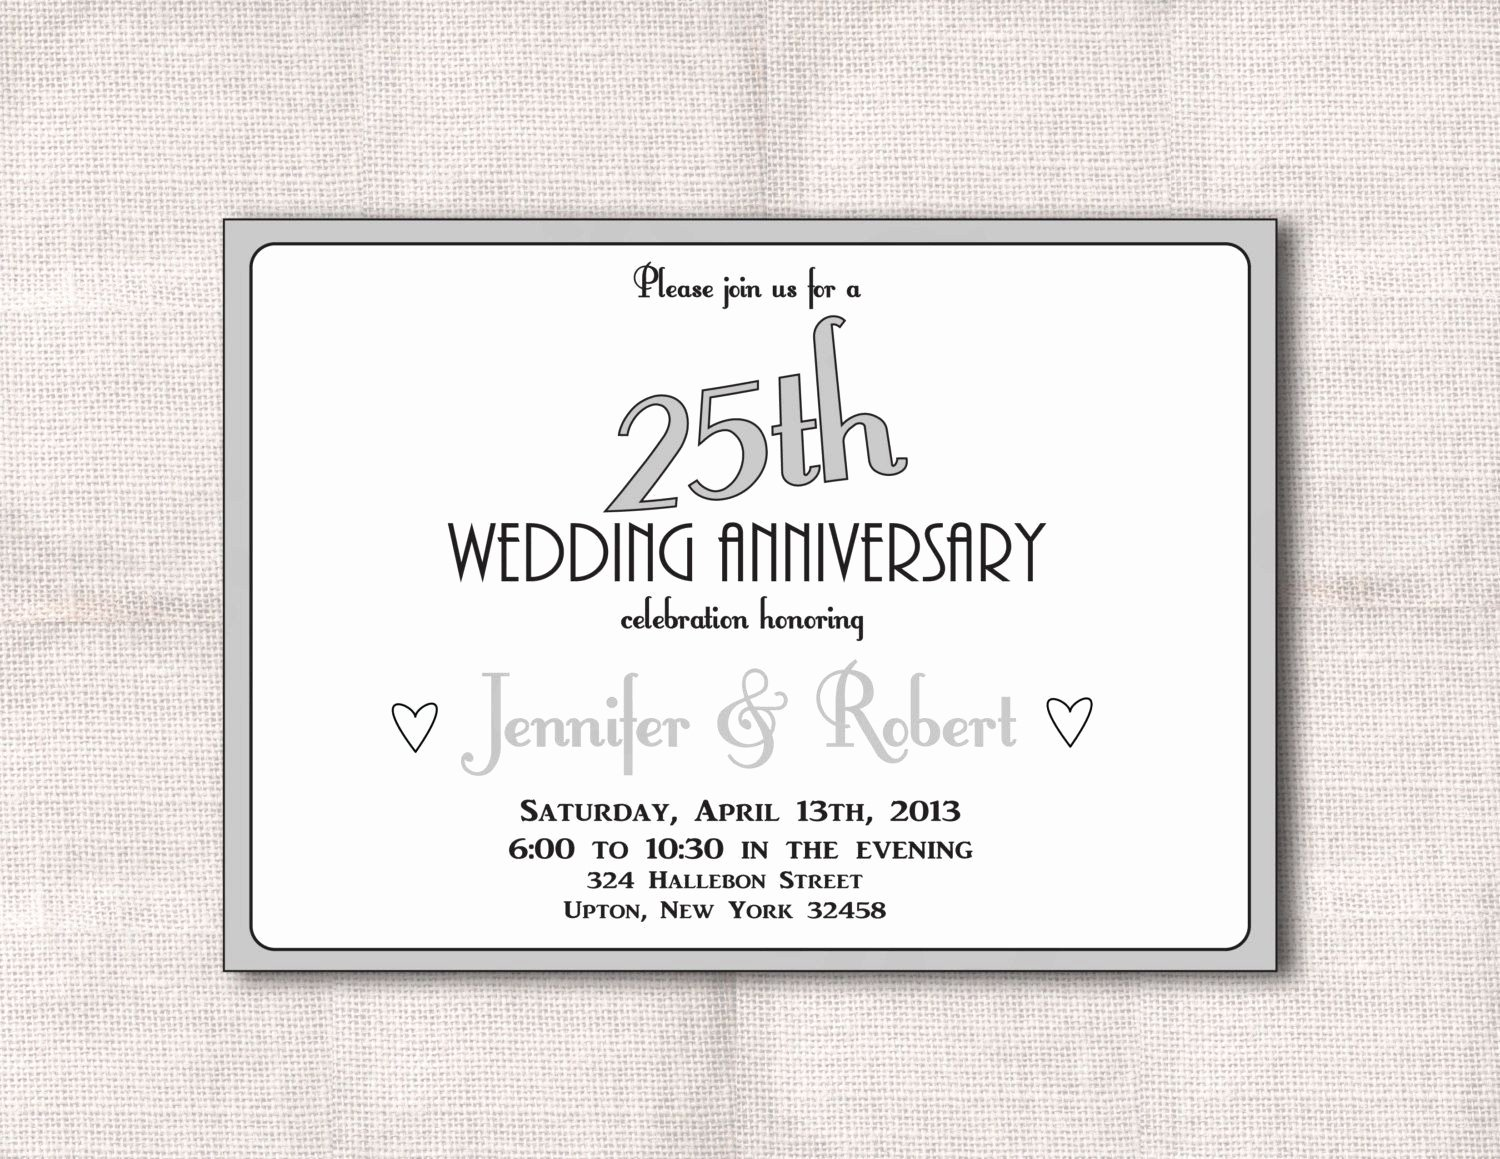 Wedding Anniversary Invite Template New Surprise 25th Wedding Anniversary Invitation Templates Wedding Invitations